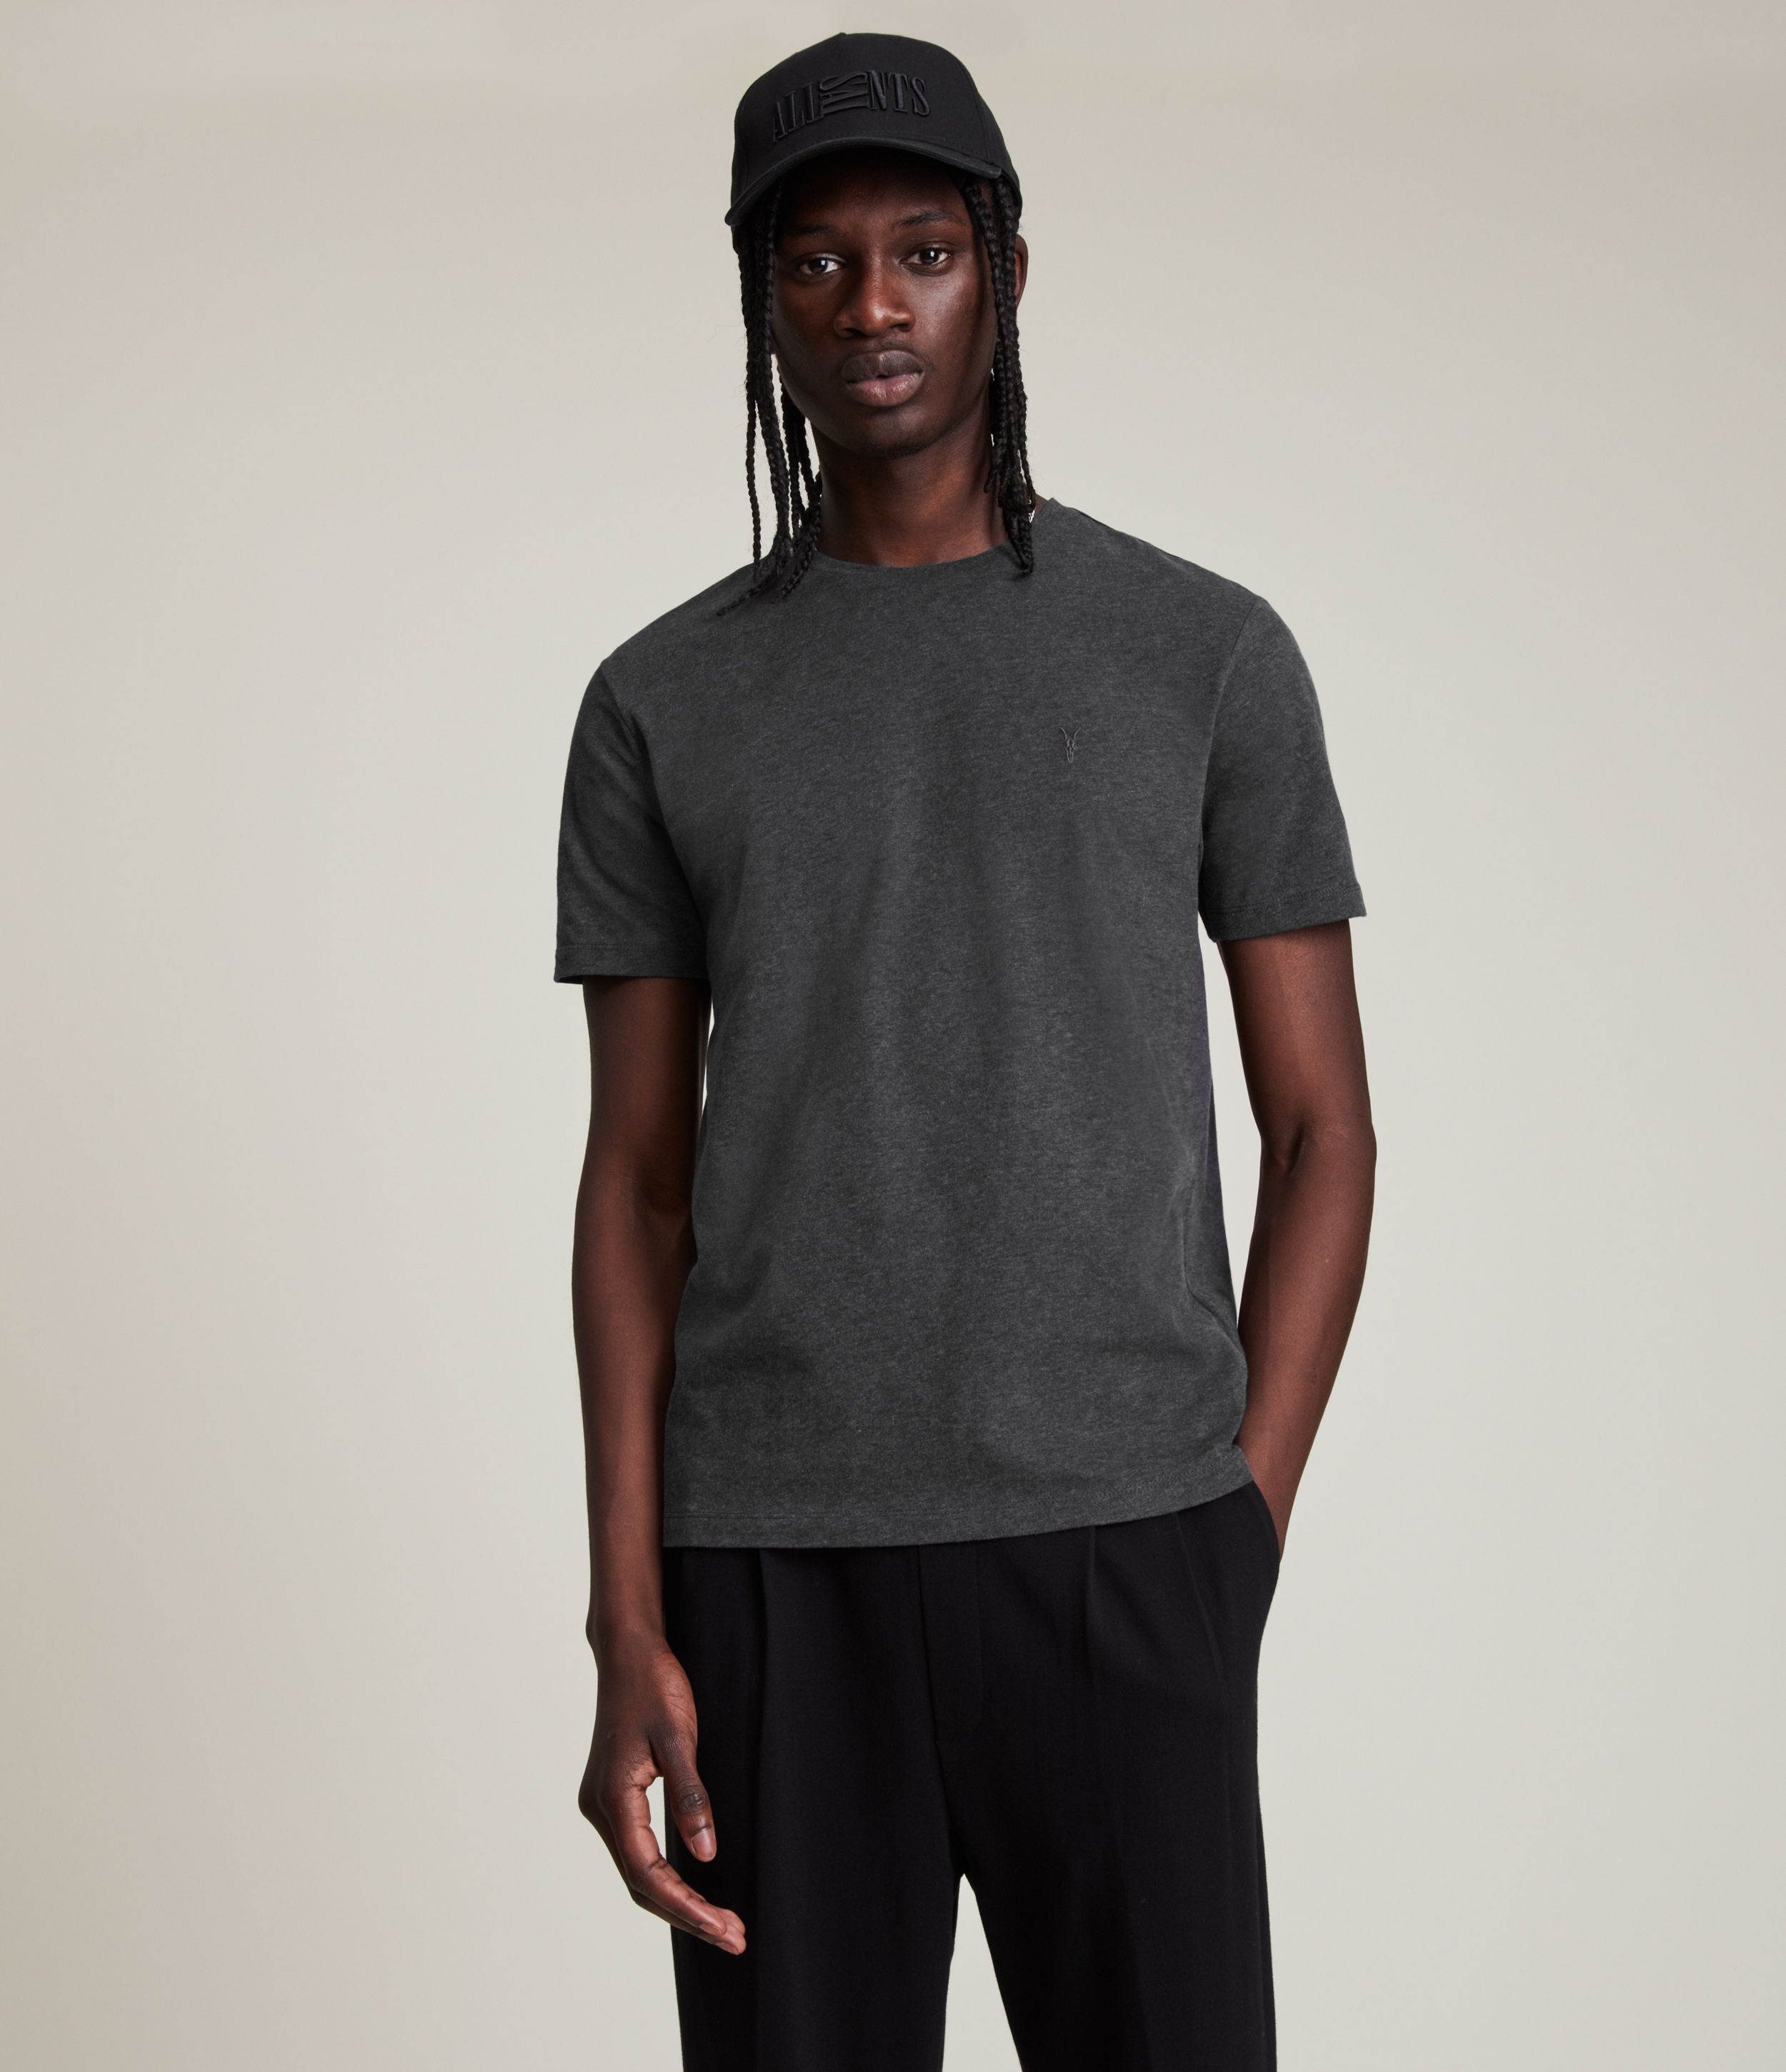 AllSaints Men's Cotton Regular Fit Brace Tonic Short Sleeve Crew T-Shirt, Grey, Size: XL